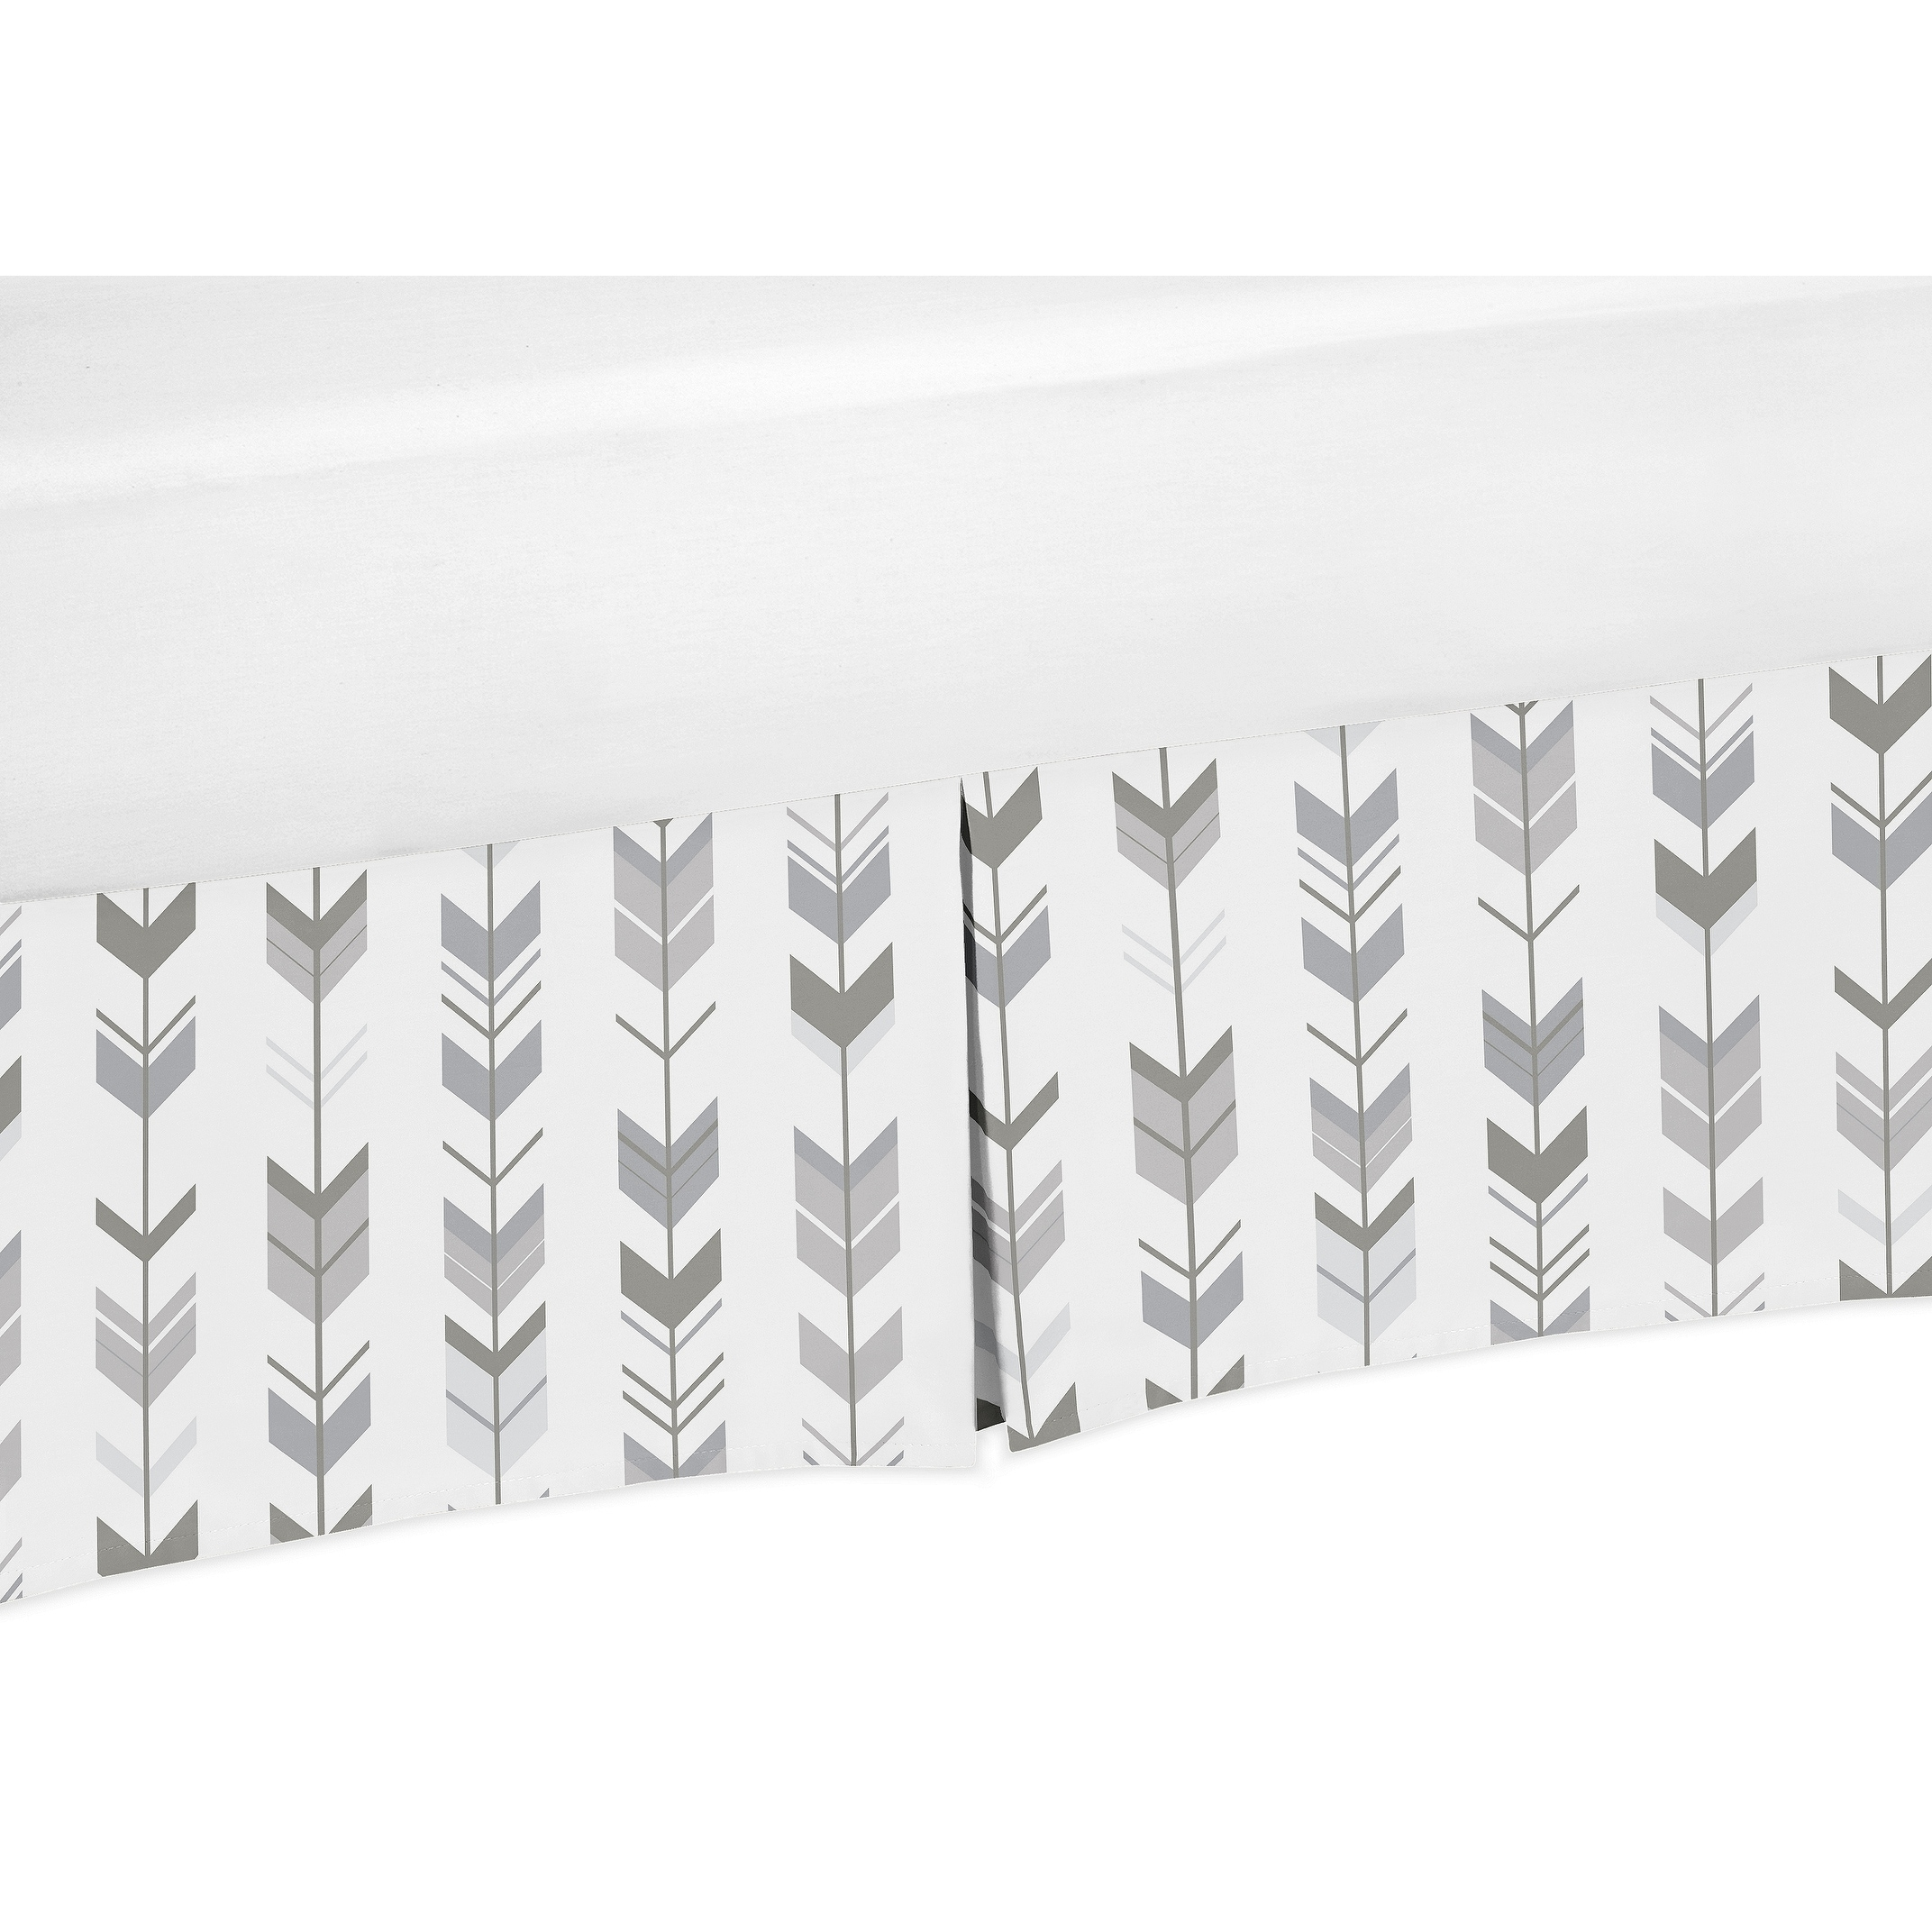 Sweet Jojo Designs Queen Bed Skirt For The Grey And White Mod Arrow Collection Overstock 18131700